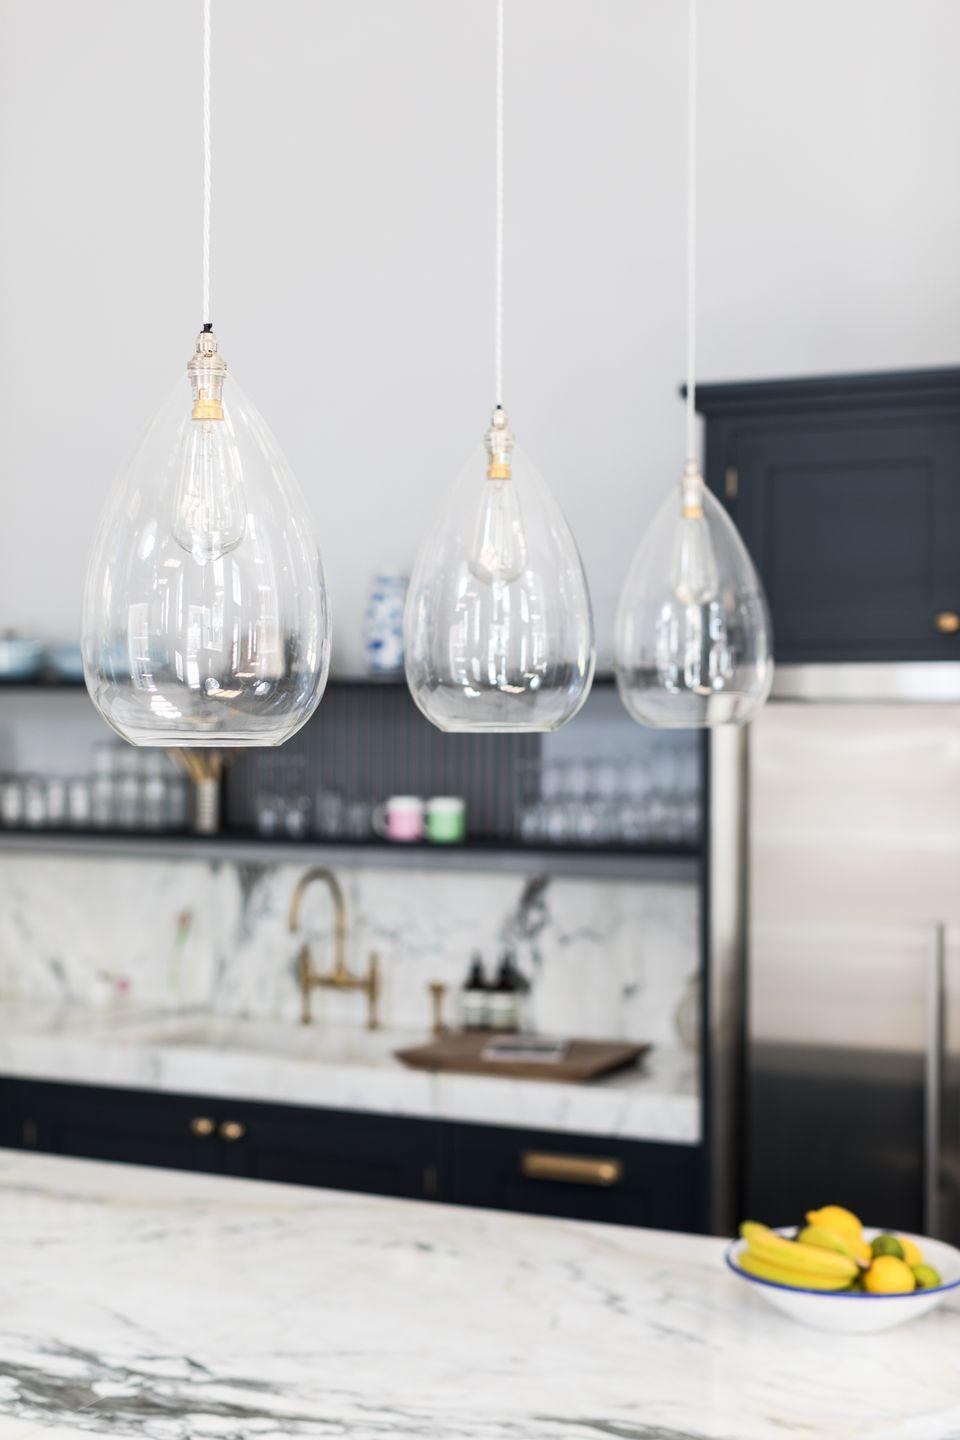 """<p>From small pendants to statement shades, there are lots of ways to brighten up your kitchen island. If it's a space where you'll be preparing food then opt for bright task lighting, however if you're dreaming of creating a spot to unwind then consider something softer. </p><p>'Pendant lighting is an elegant addition that will bring an extra layer of interest to the kitchen's design,' says Graeme. 'The low hanging bulbs will offer extra light for everyday tasks without overwhelming the space.' </p><p>• Clear glass pendant, £215 from <a href=""""https://www.fritzfryer.co.uk/products/wellington-clear-glass-pendant-light/"""" rel=""""nofollow noopener"""" target=""""_blank"""" data-ylk=""""slk:Fritz Fryer"""" class=""""link rapid-noclick-resp"""">Fritz Fryer </a></p><p><strong>READ MORE</strong>: <a href=""""https://www.housebeautiful.com/uk/decorate/kitchen/a31990026/kitchen-lighting-ideas/"""" rel=""""nofollow noopener"""" target=""""_blank"""" data-ylk=""""slk:Kitchen lighting ideas for the hardest-working room in your house"""" class=""""link rapid-noclick-resp"""">Kitchen lighting ideas for the hardest-working room in your house</a></p>"""